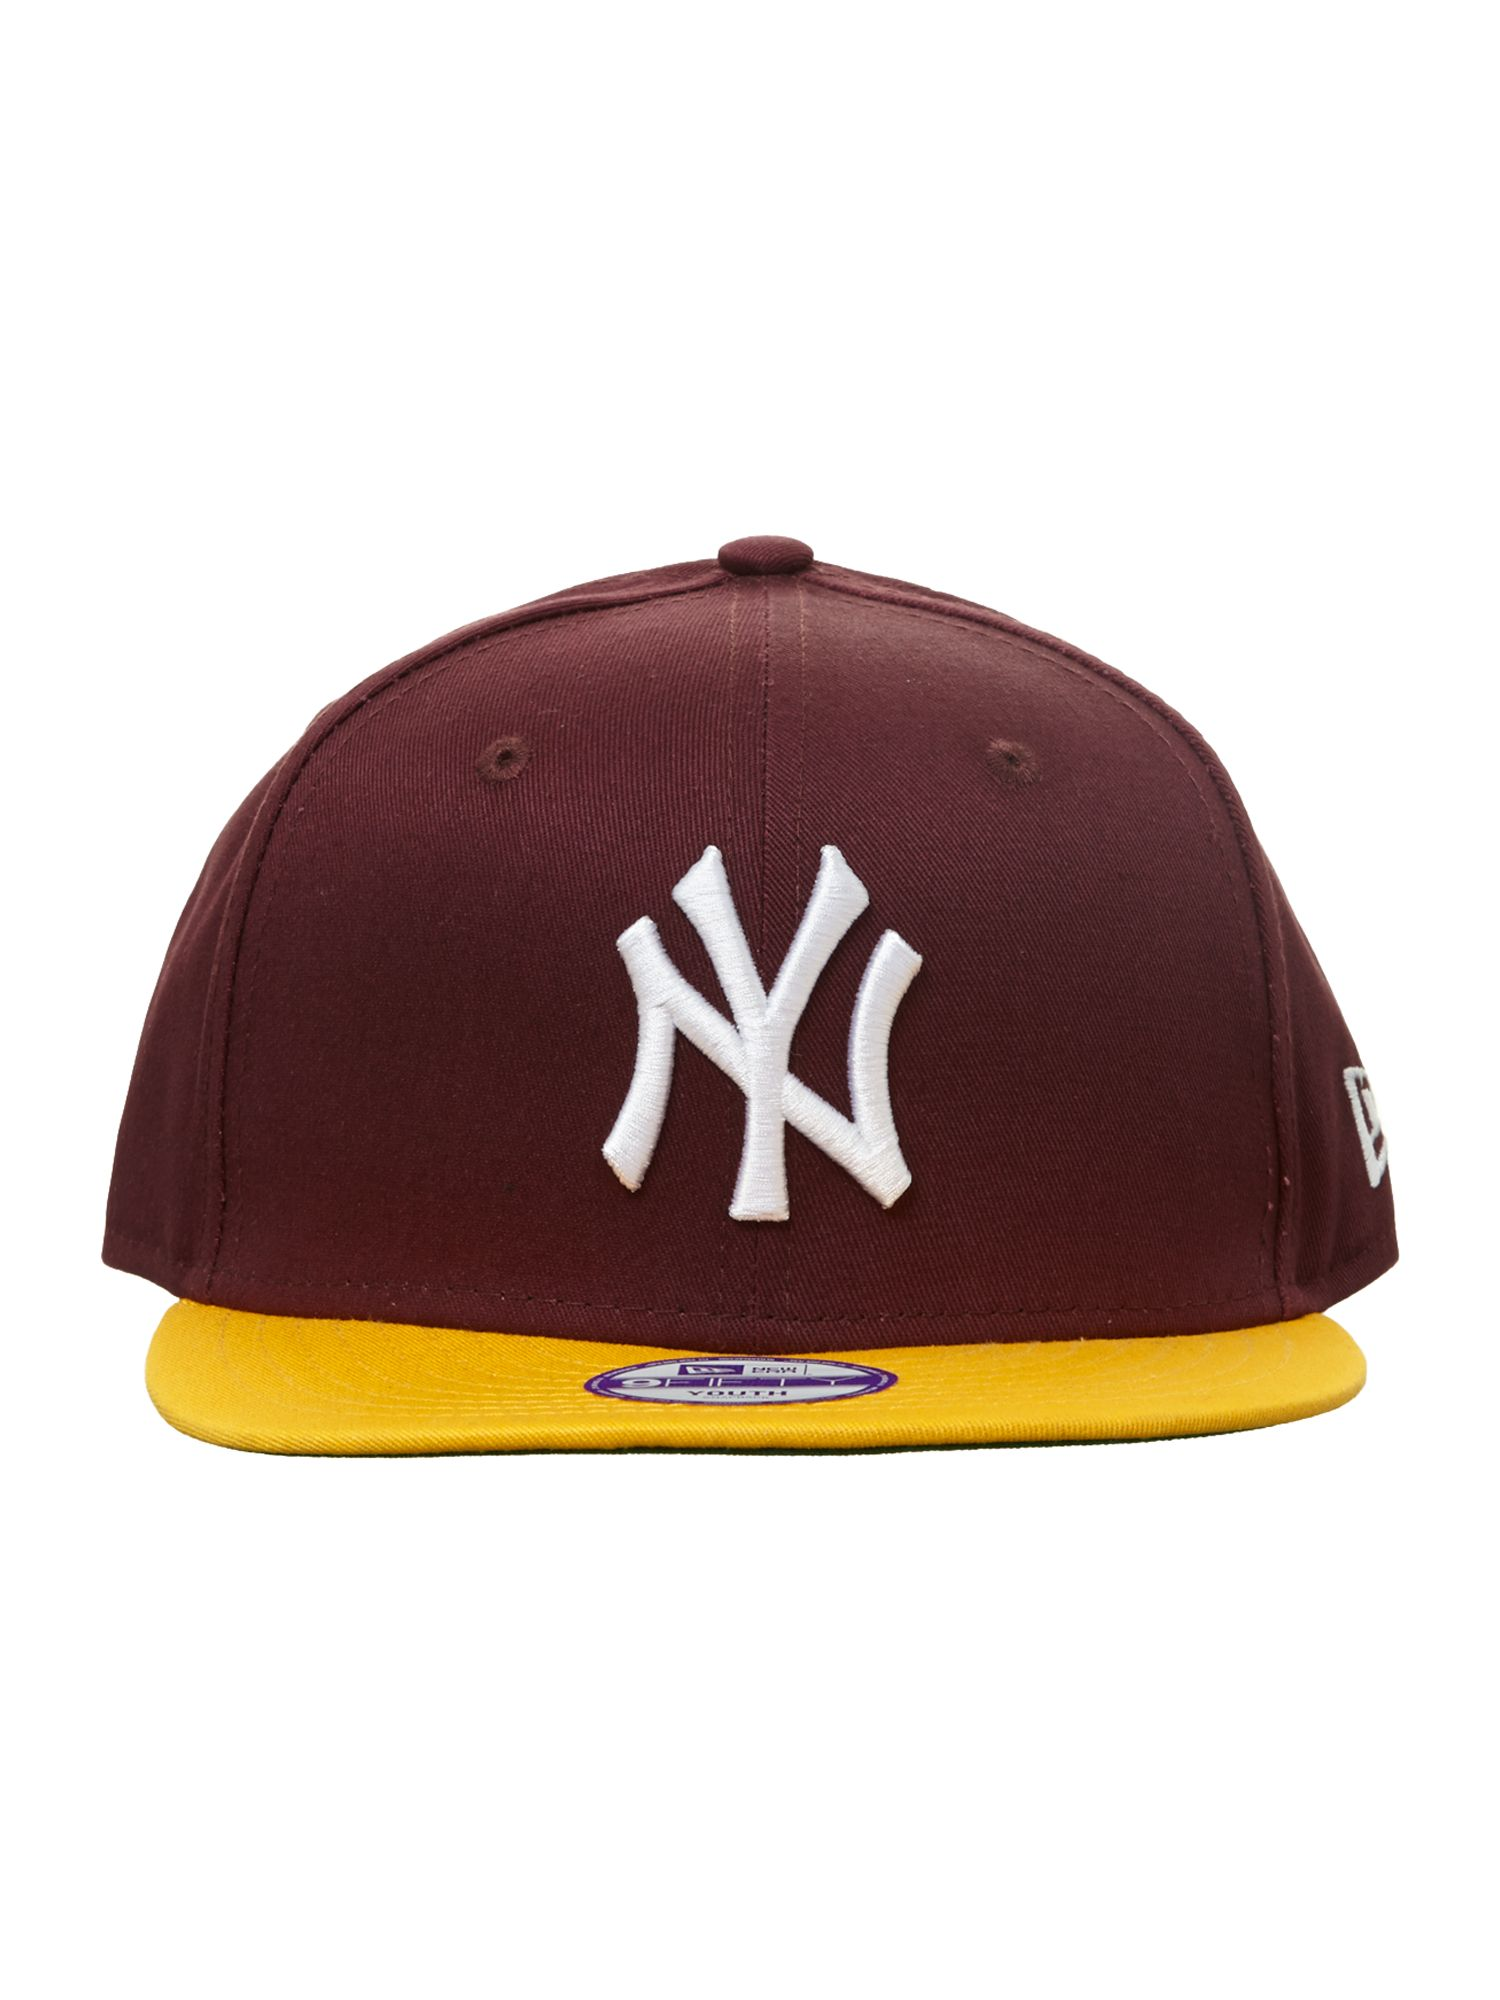 Kid`s 9Fifty block NY hat